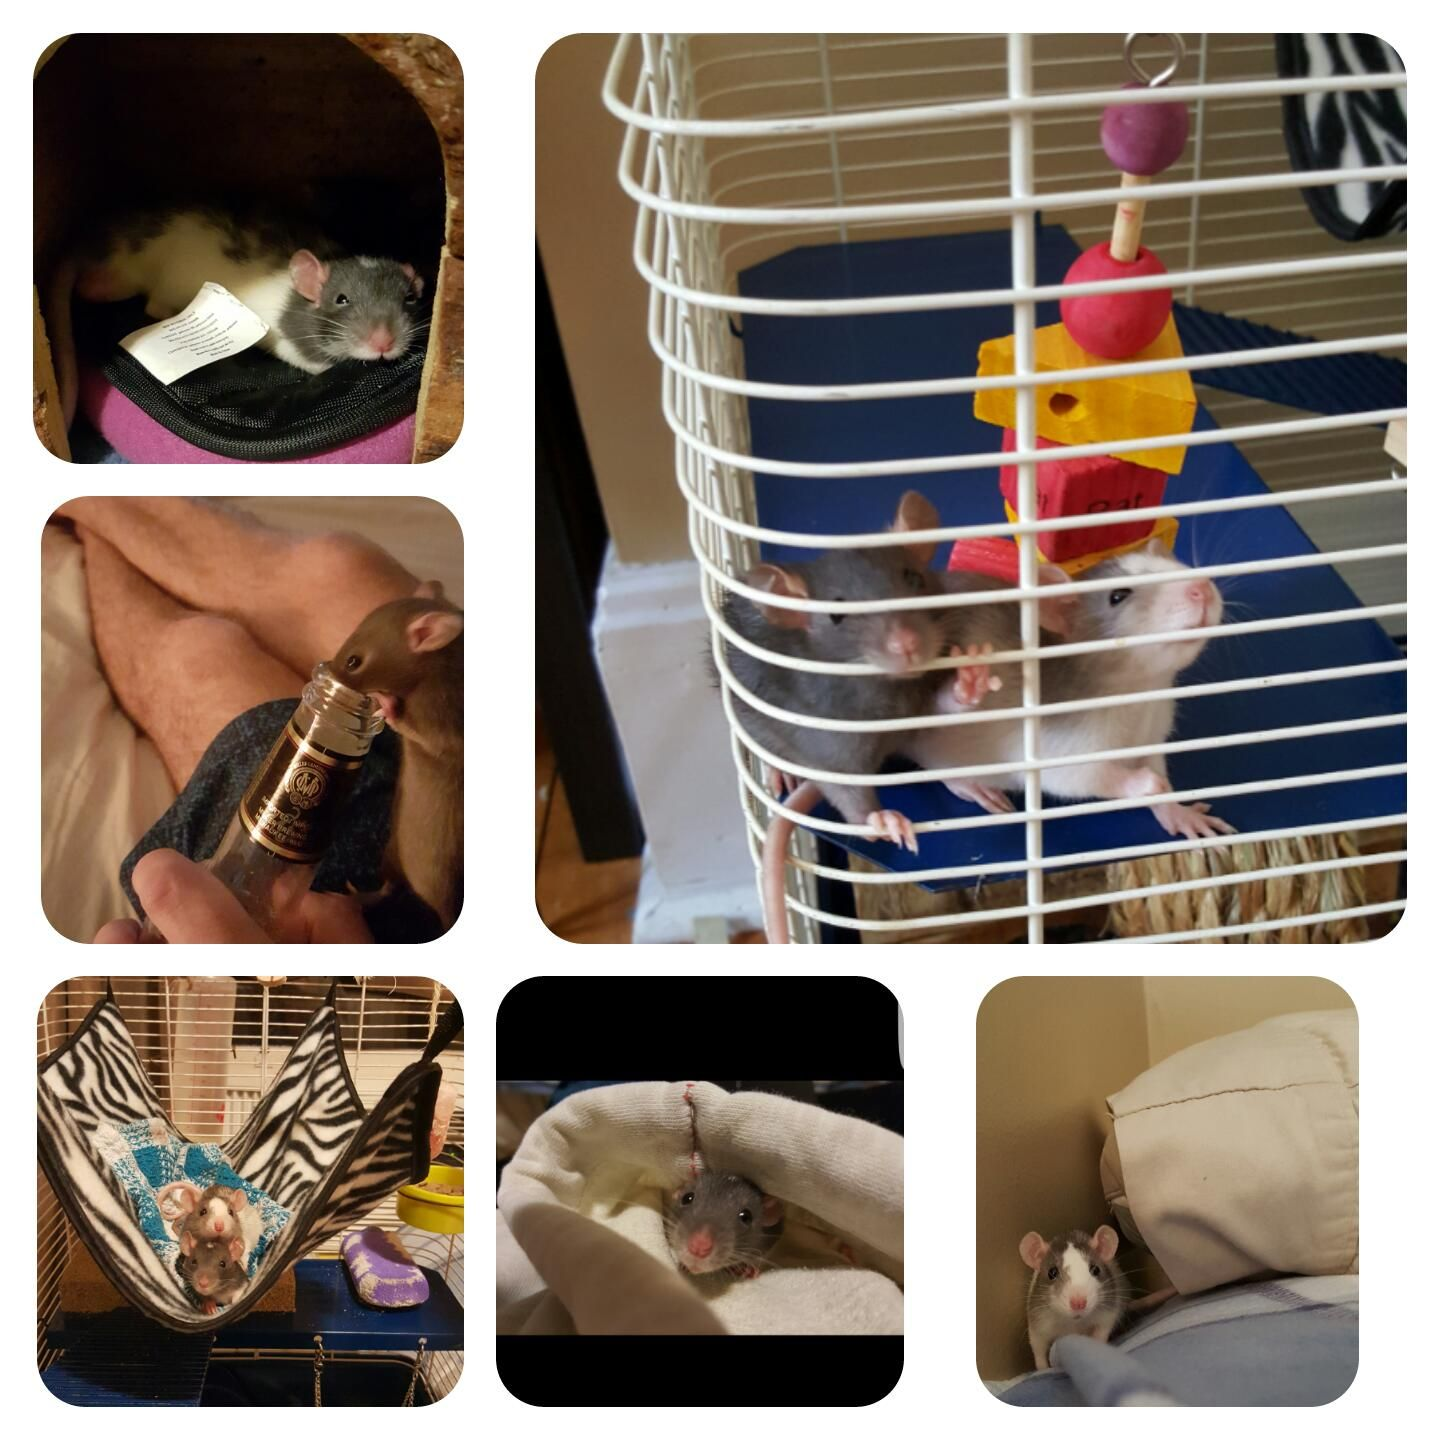 In honour of my boys first birthday here are my favorite photos from their first week in their new home #aww #cute #rat #cuterats #ratsofpinterest #cuddle #fluffy #animals #pets #bestfriend #ittssofluffy #boopthesnoot